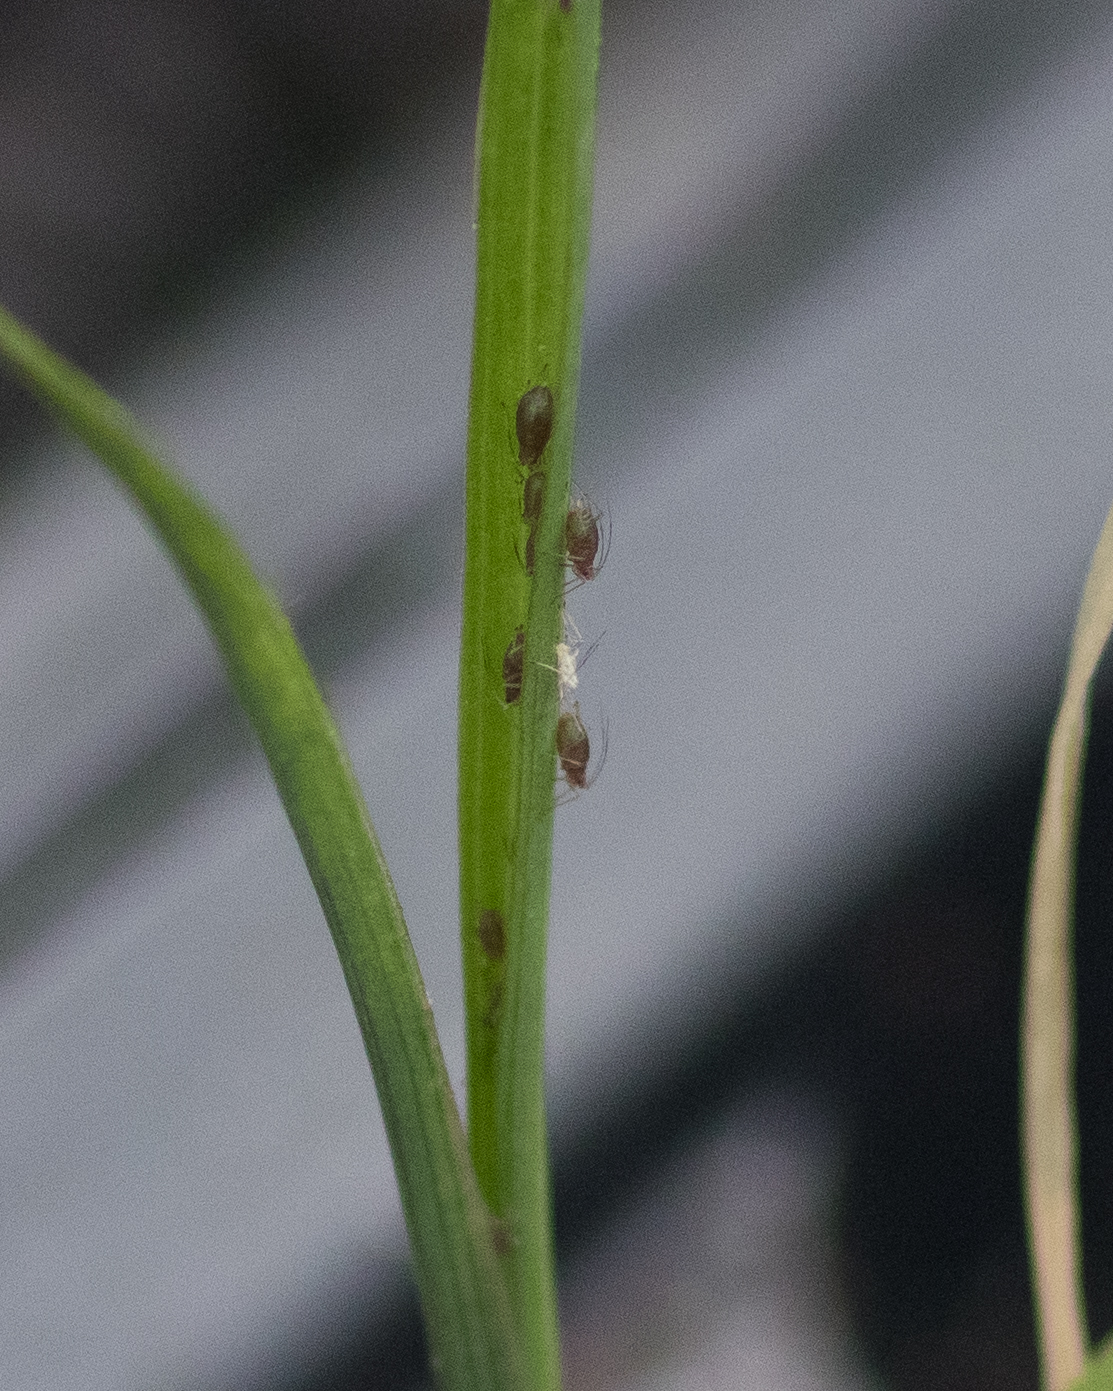 Aphids are gross.